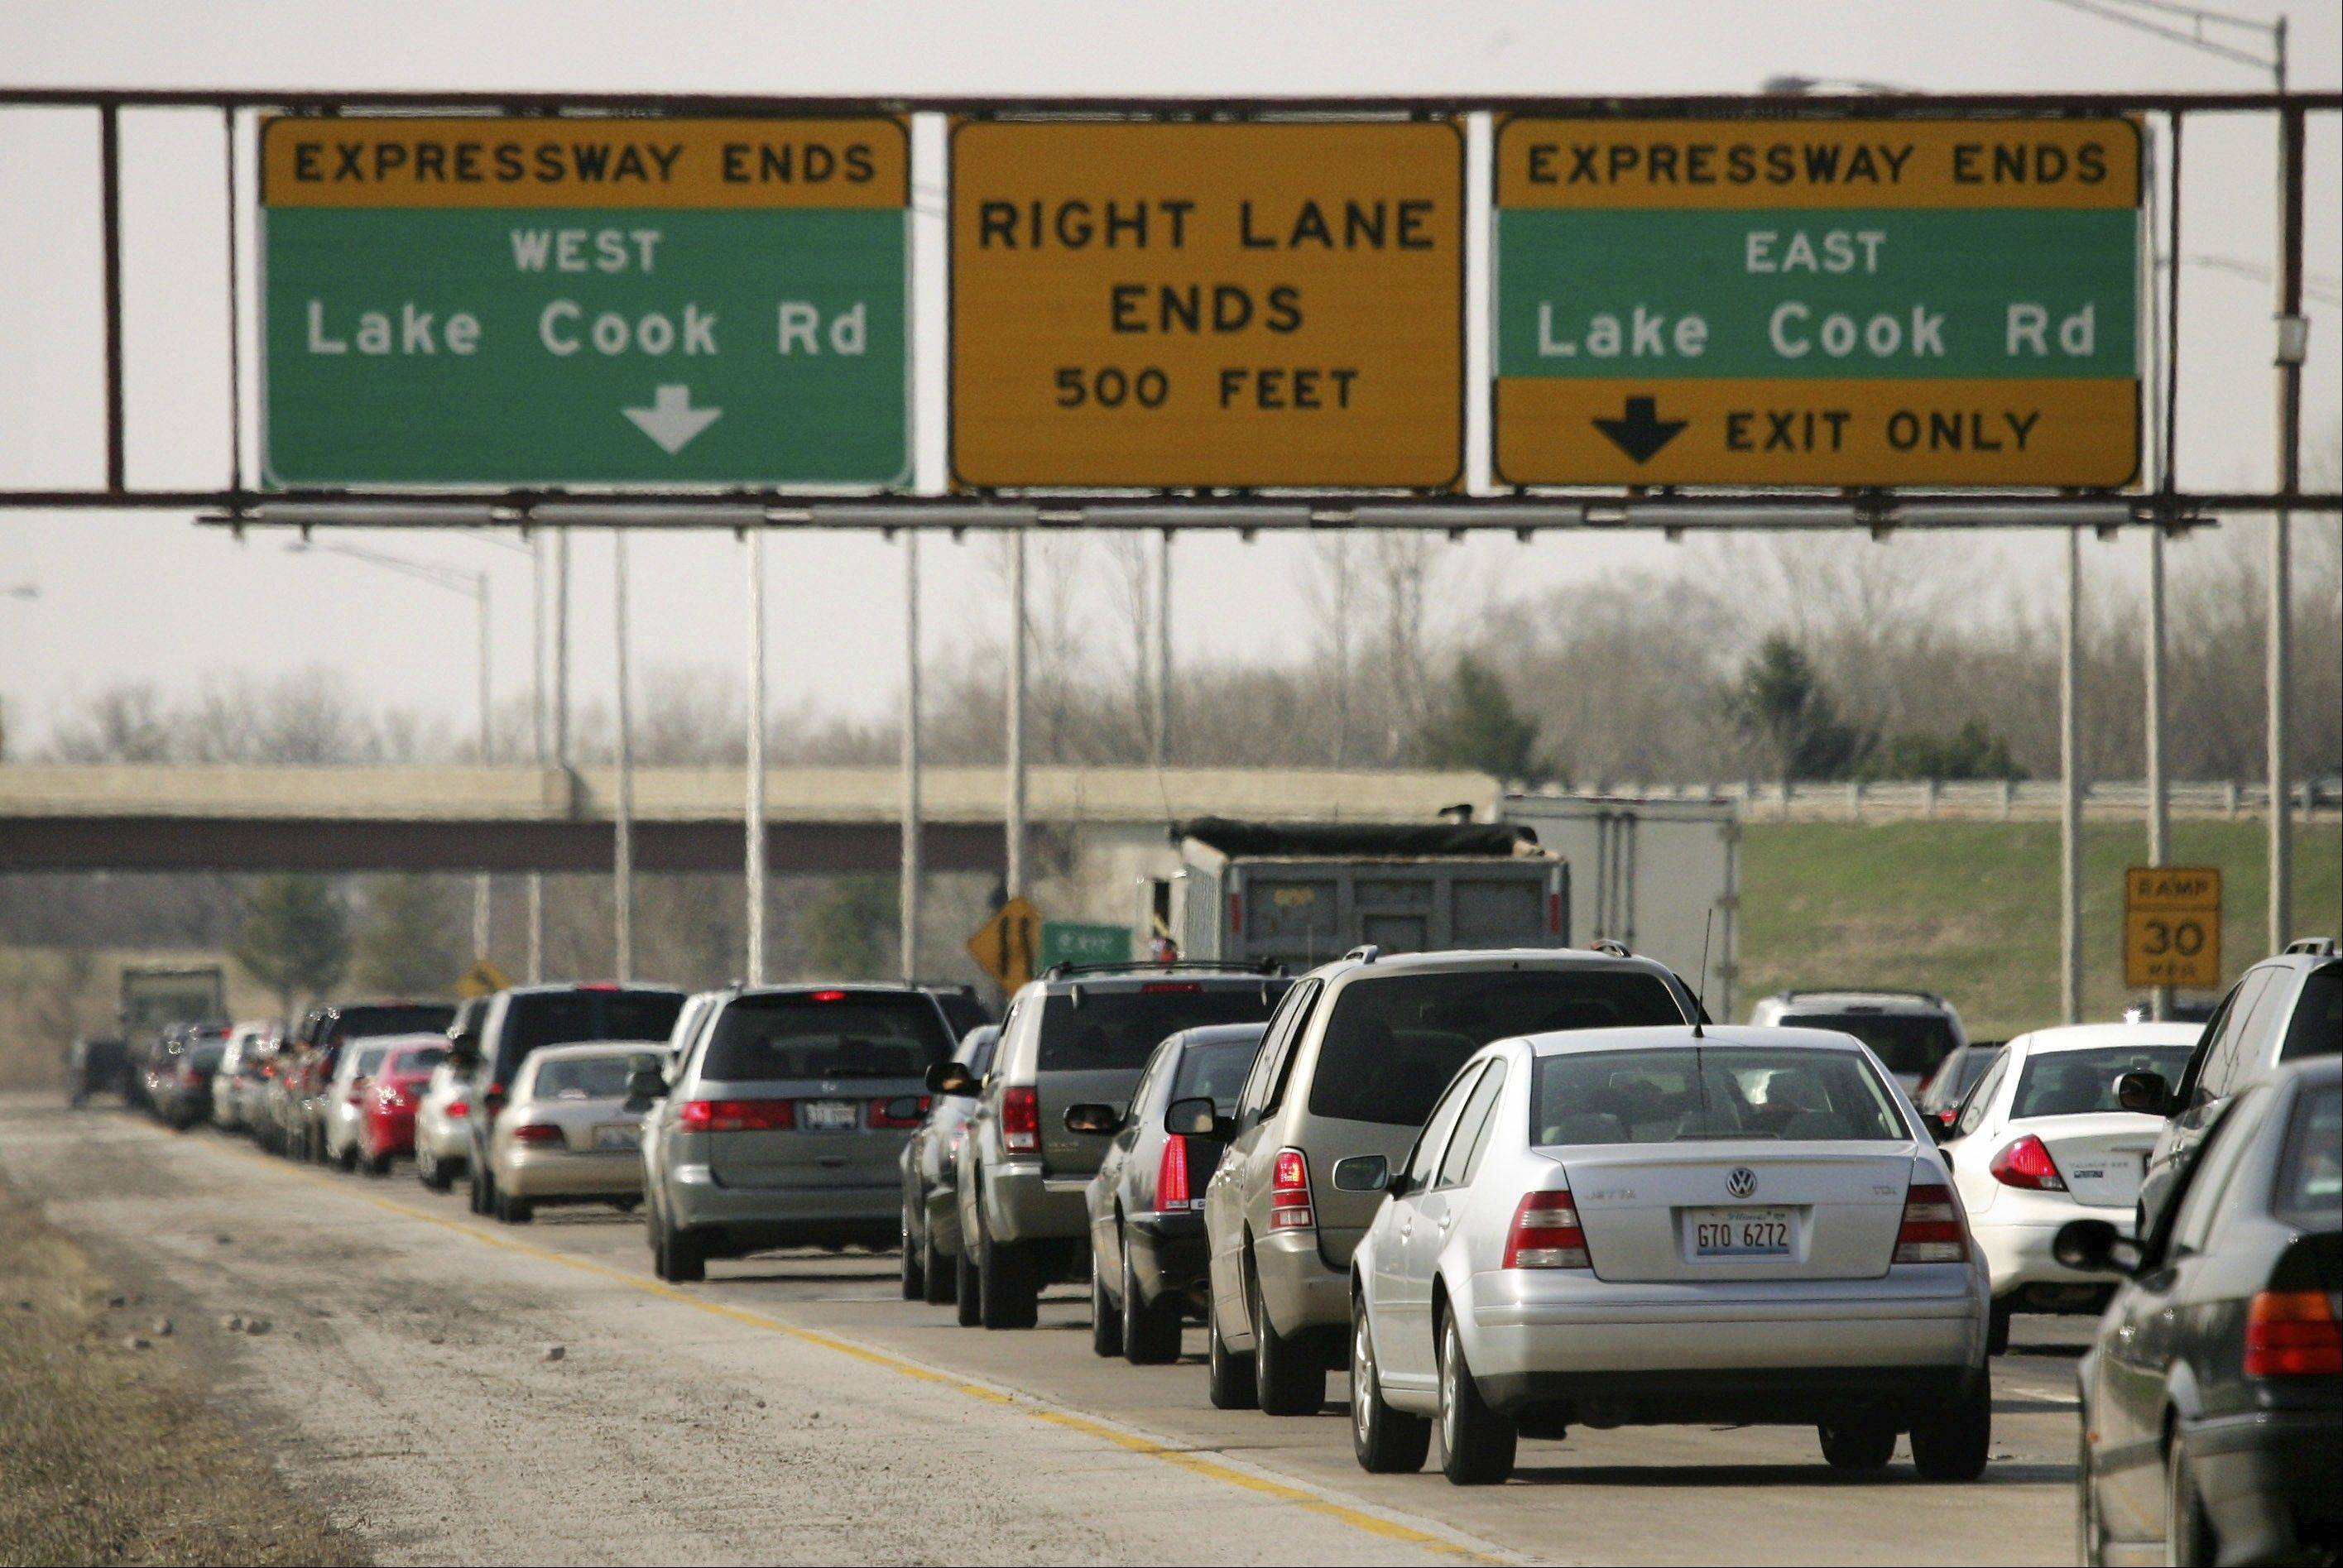 Rush hour backups could be a thing of the past under proposals discussed this month by the Route 53/120 Blue Ribbon Advisory Council. Among the plans on the table are a $1 billion freeway and a six-lane, $2.3 billion tollway.